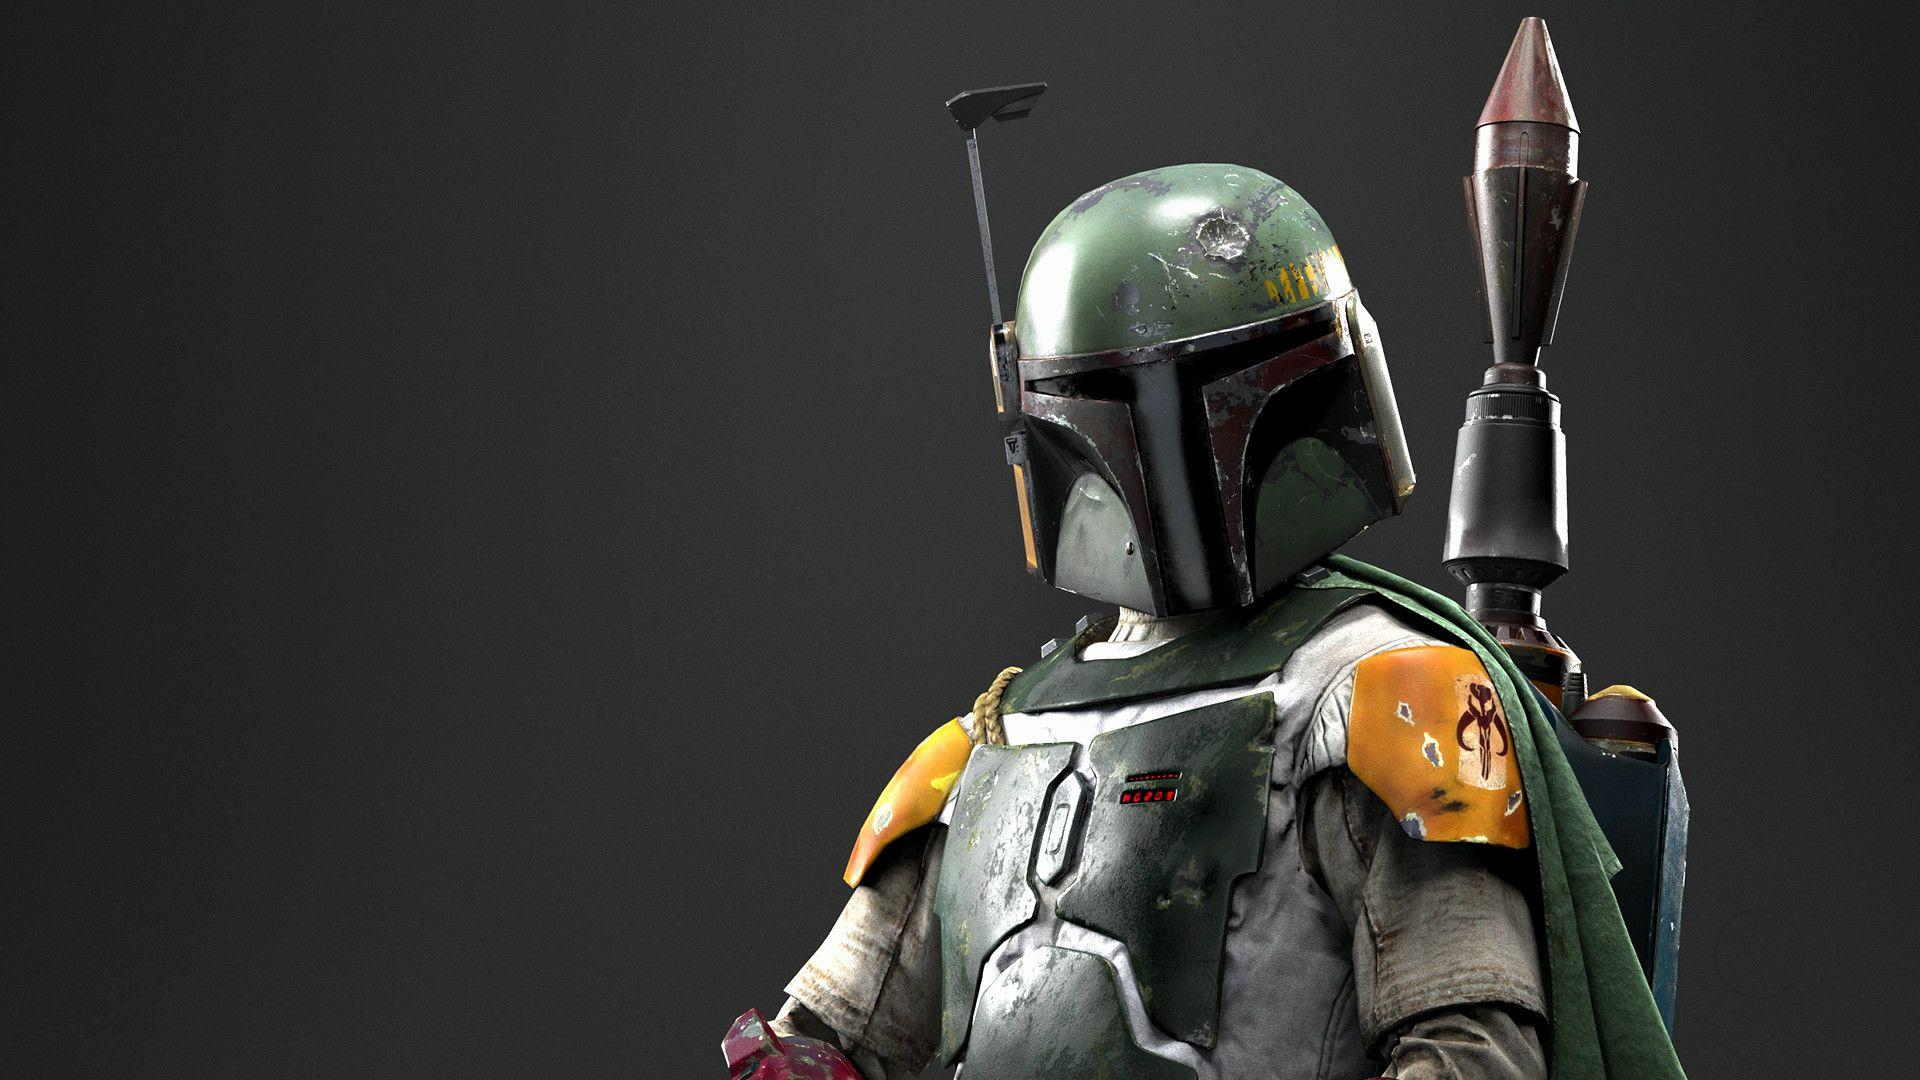 Boba Fett Hd Wallpapers Wallpaper Cave